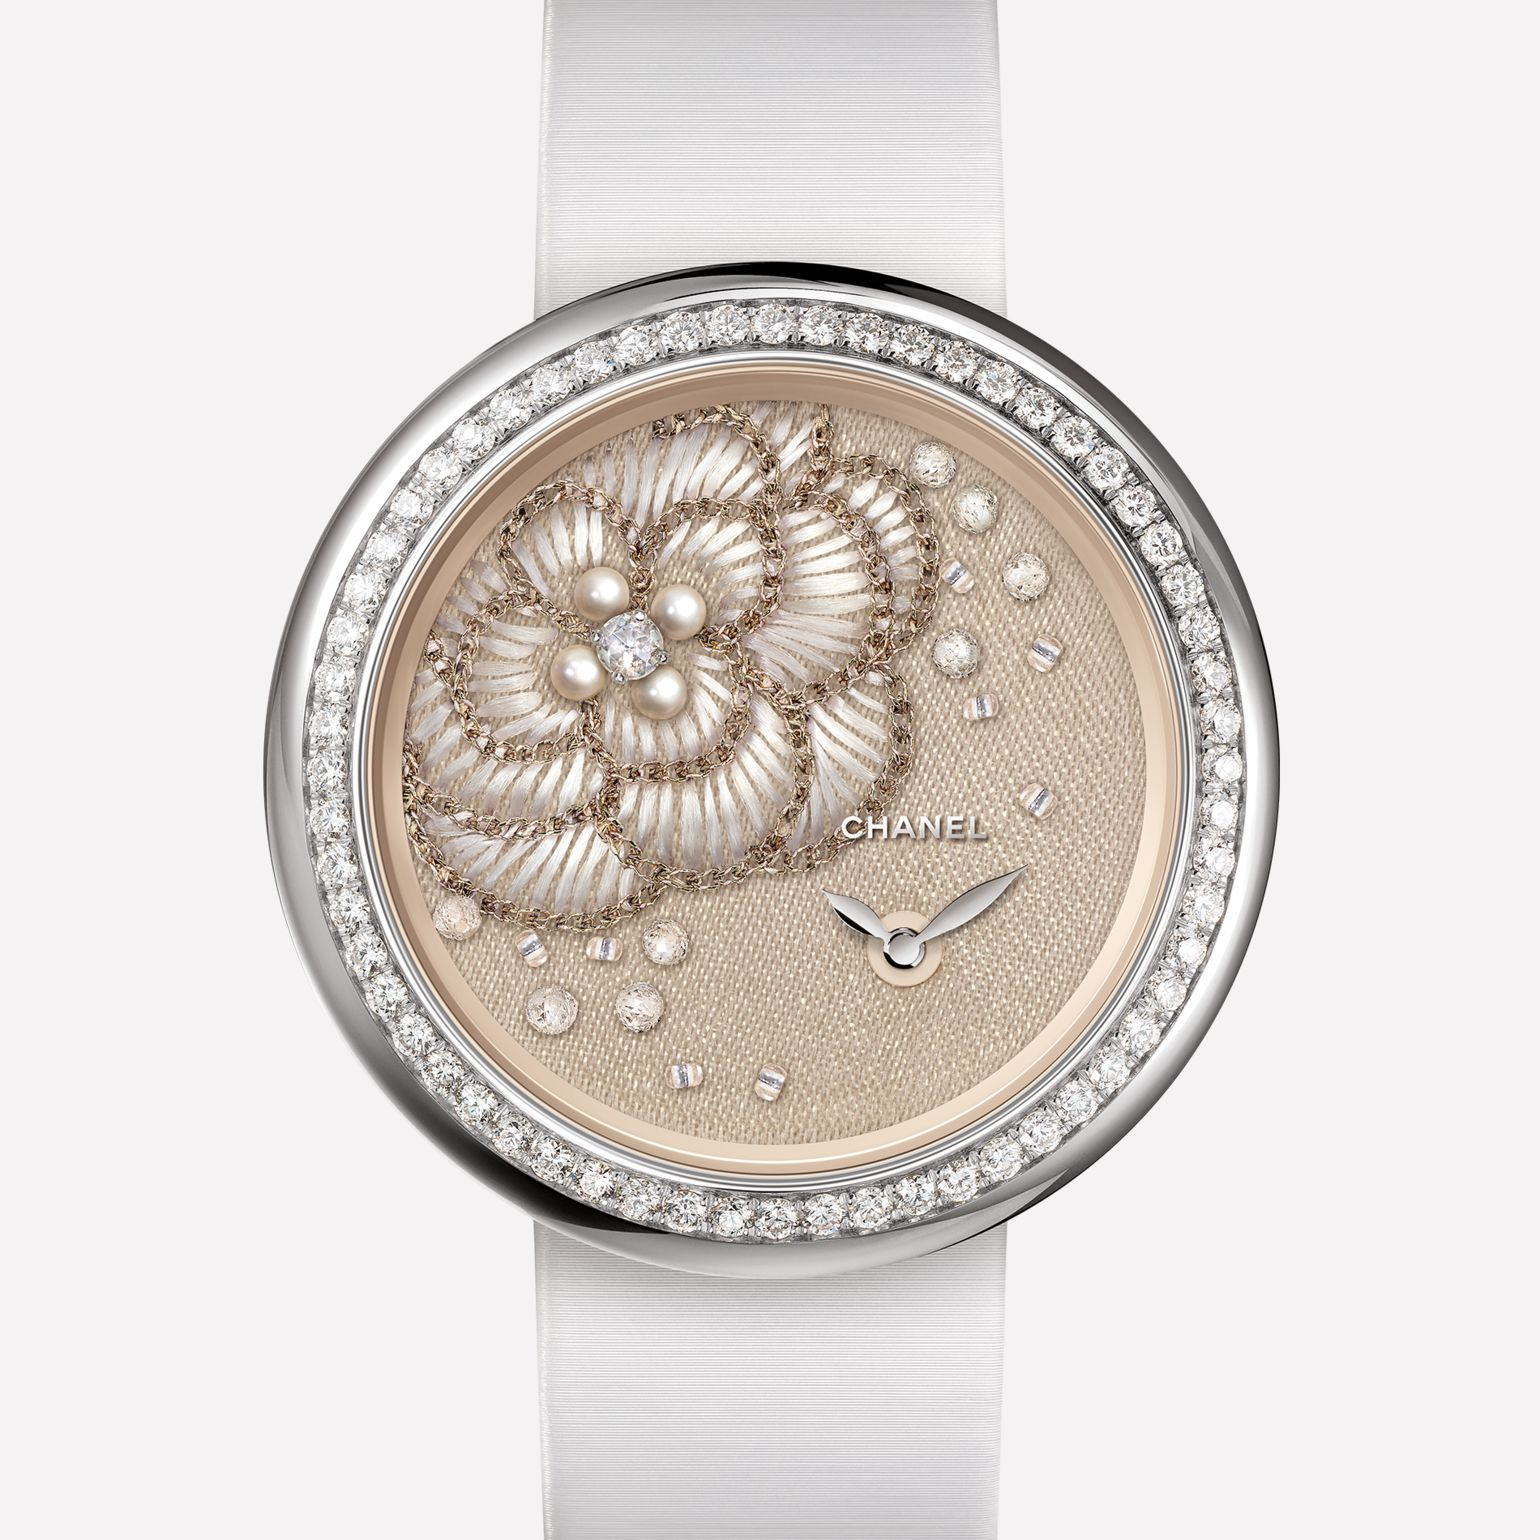 Mademoiselle Privé Watch Camellia in gold thread, fine pearls, diamonds, and glass beads - Lesage embroidery